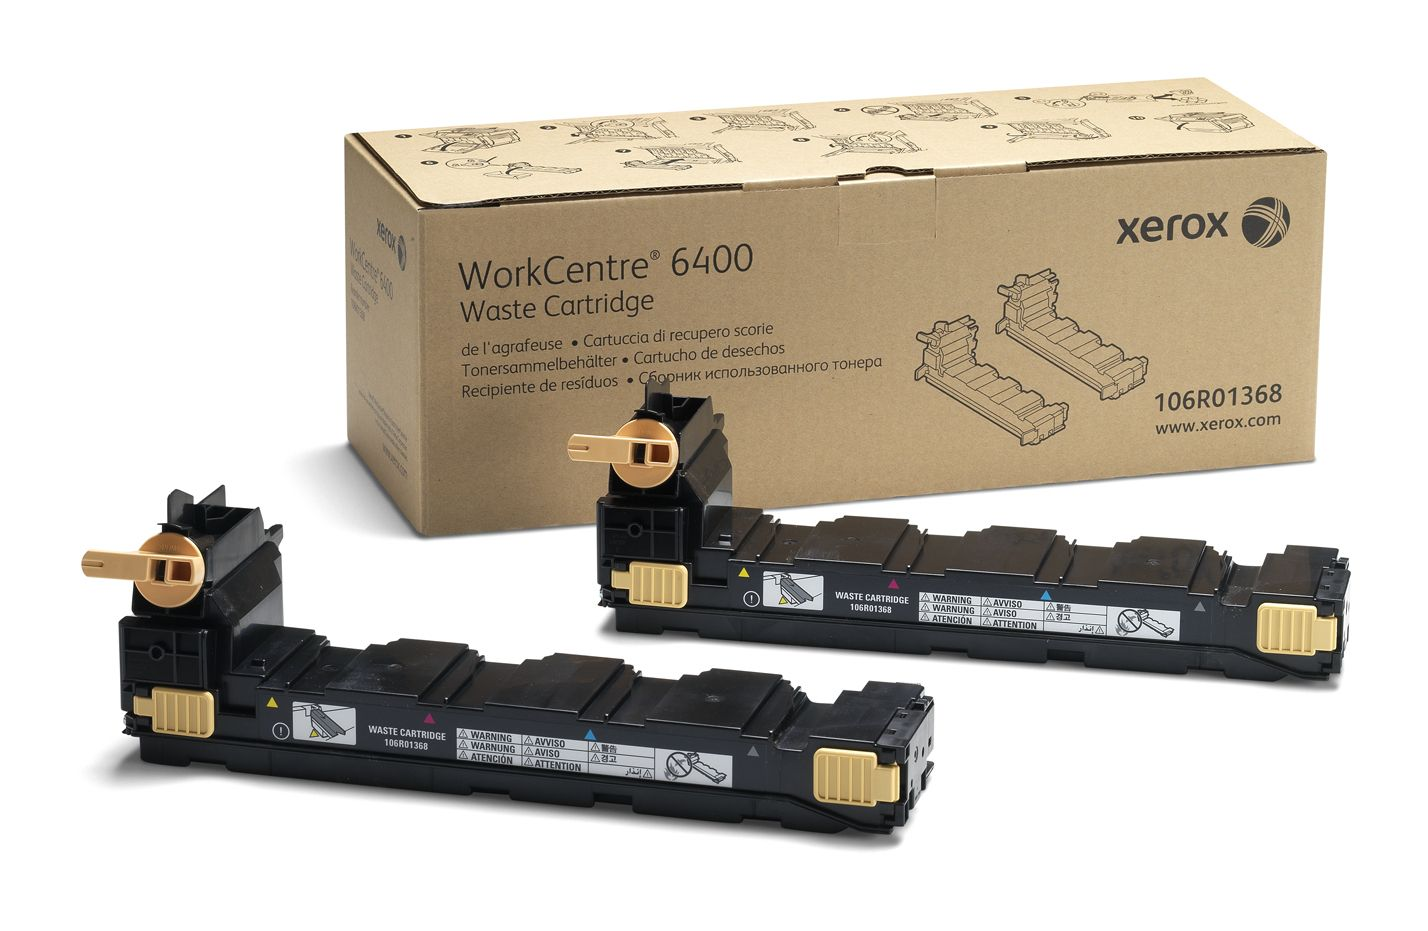 XEROX WorkCentre 6400 - 2 - original - Toneroppsamler - for WorkCentre 6400, 6400/XFM, 6400S, 6400SFS, 6400X, 6400XF, 6400XM (106R01368)